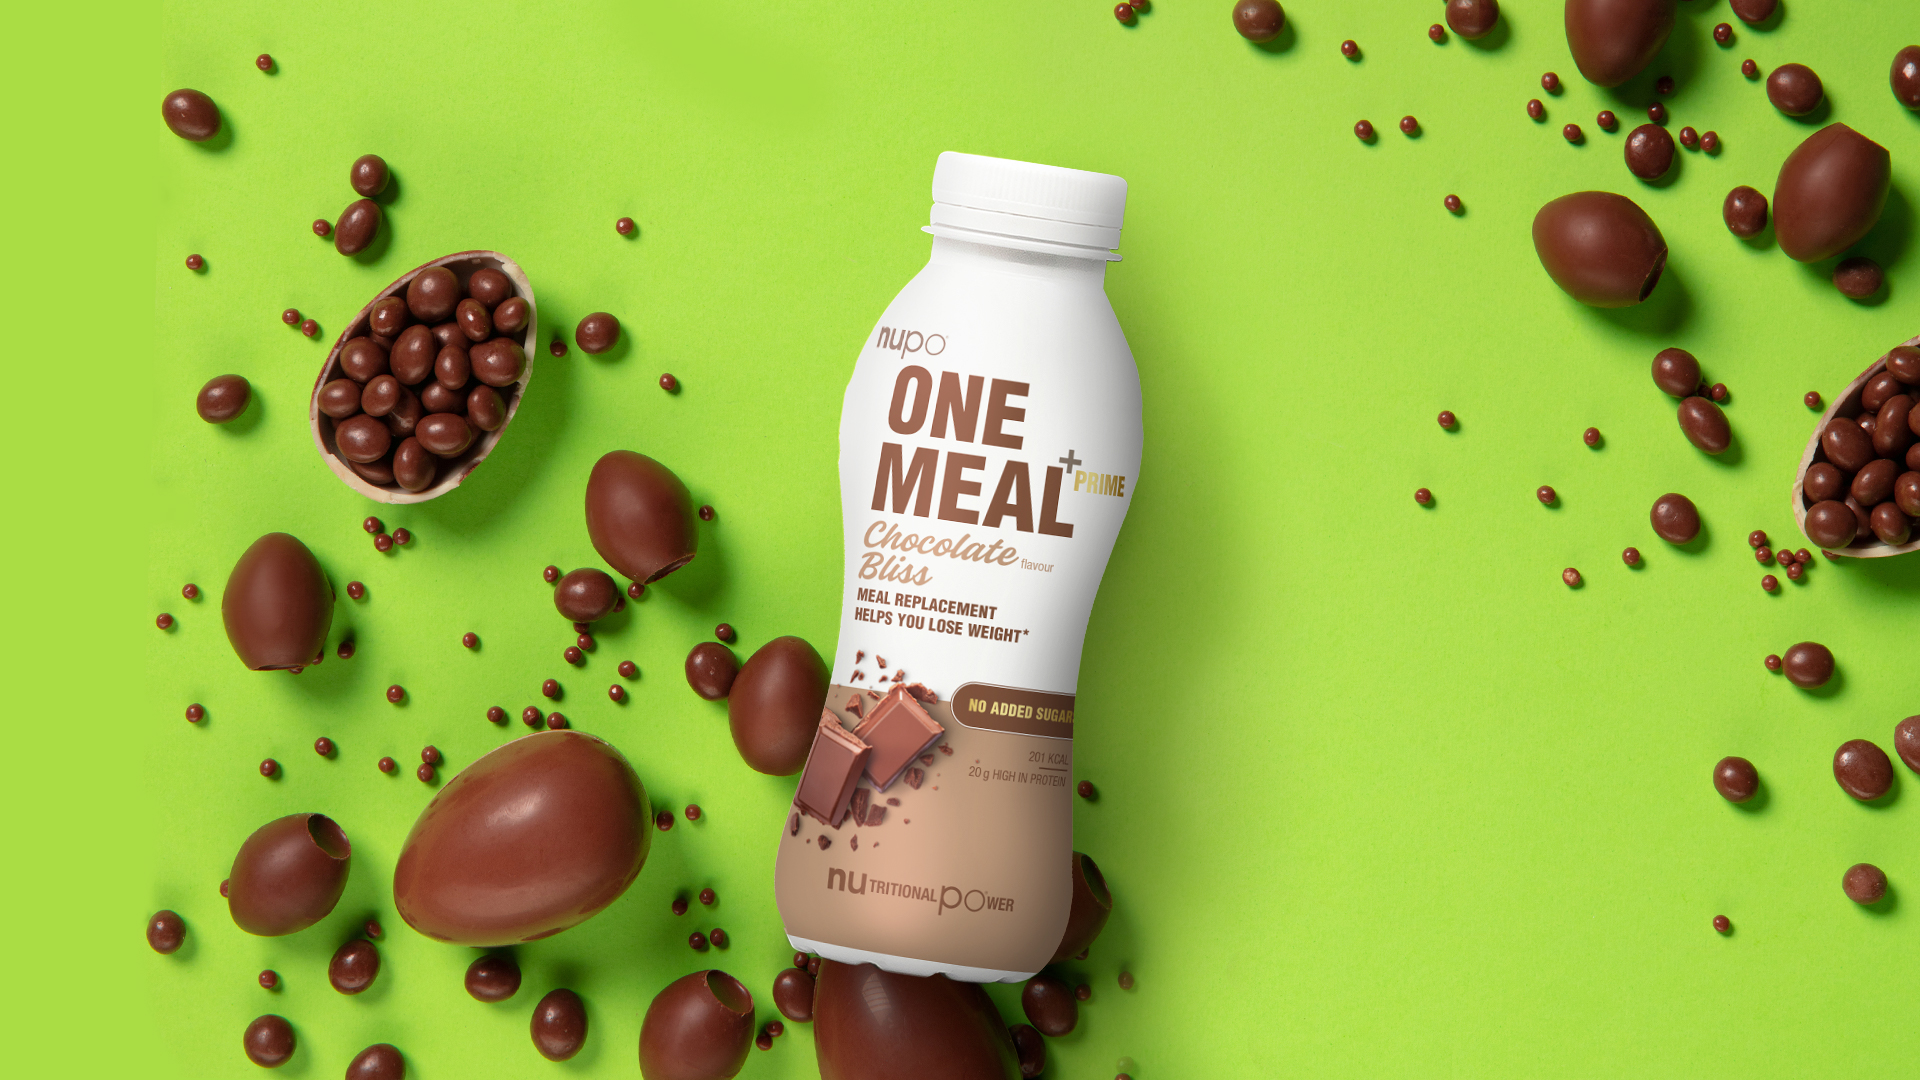 one-meal-prime-chocolate-shake-for-weight-loss